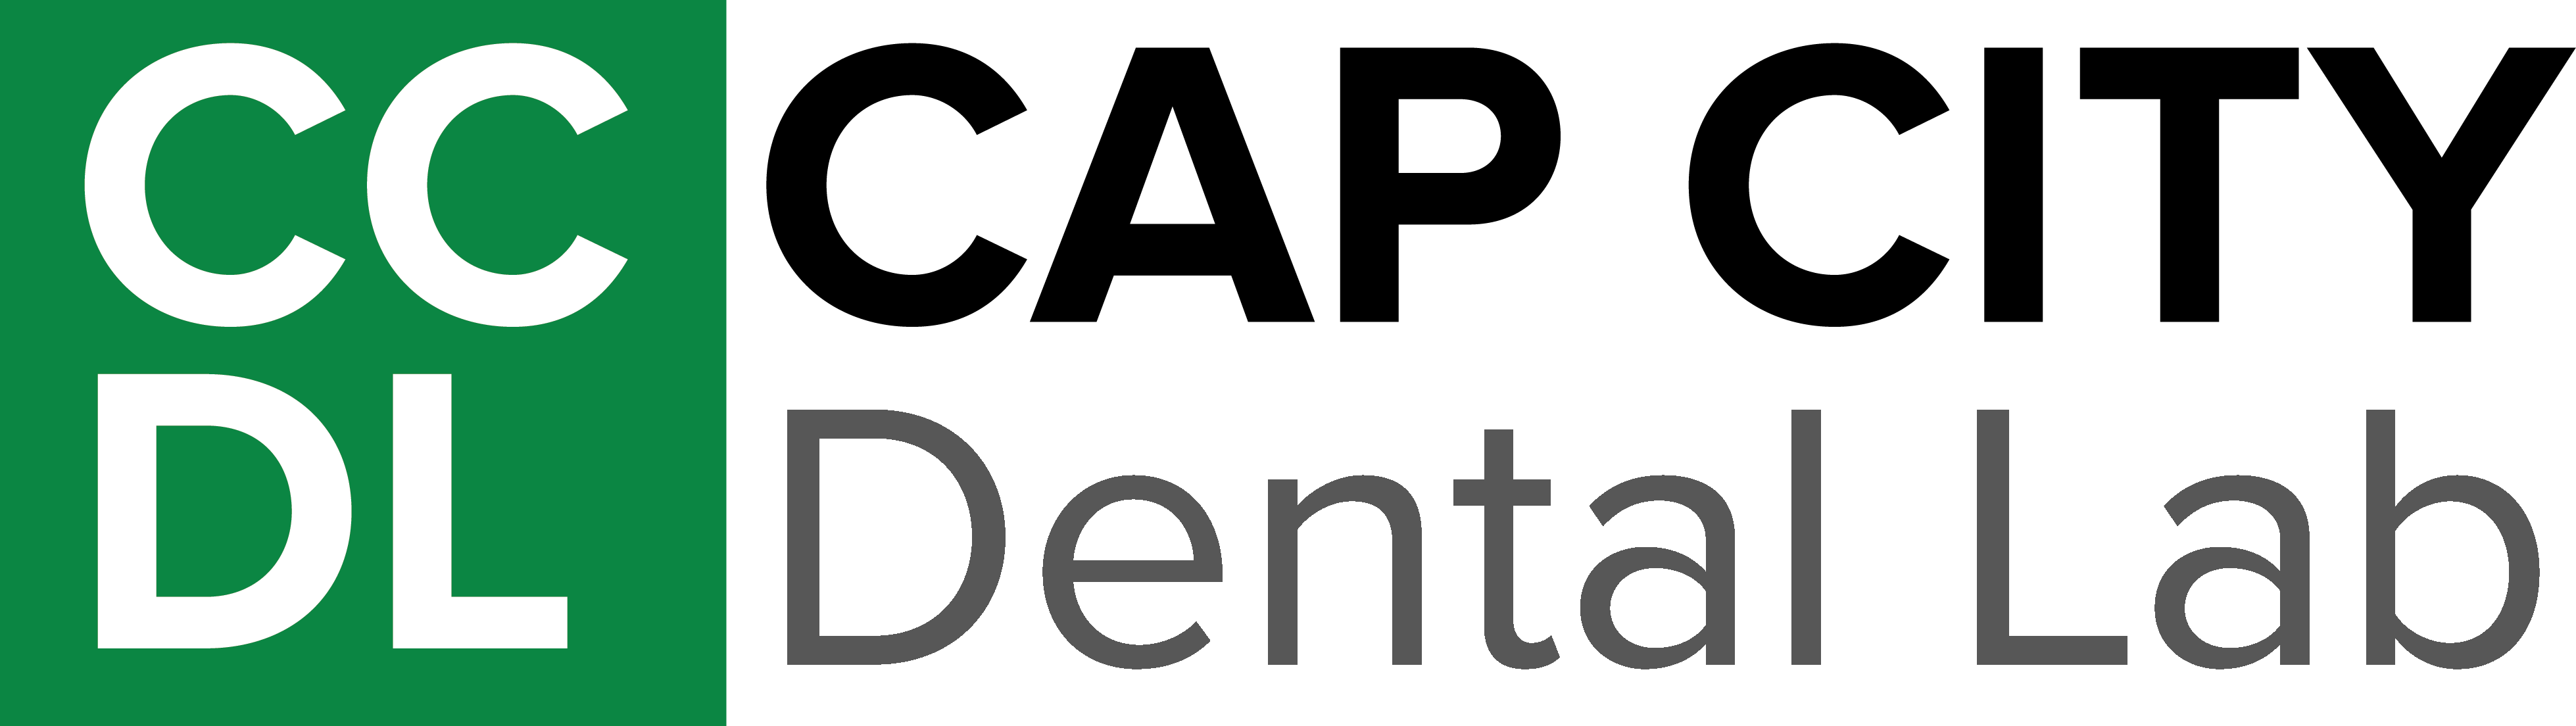 Cap City Dental Lab